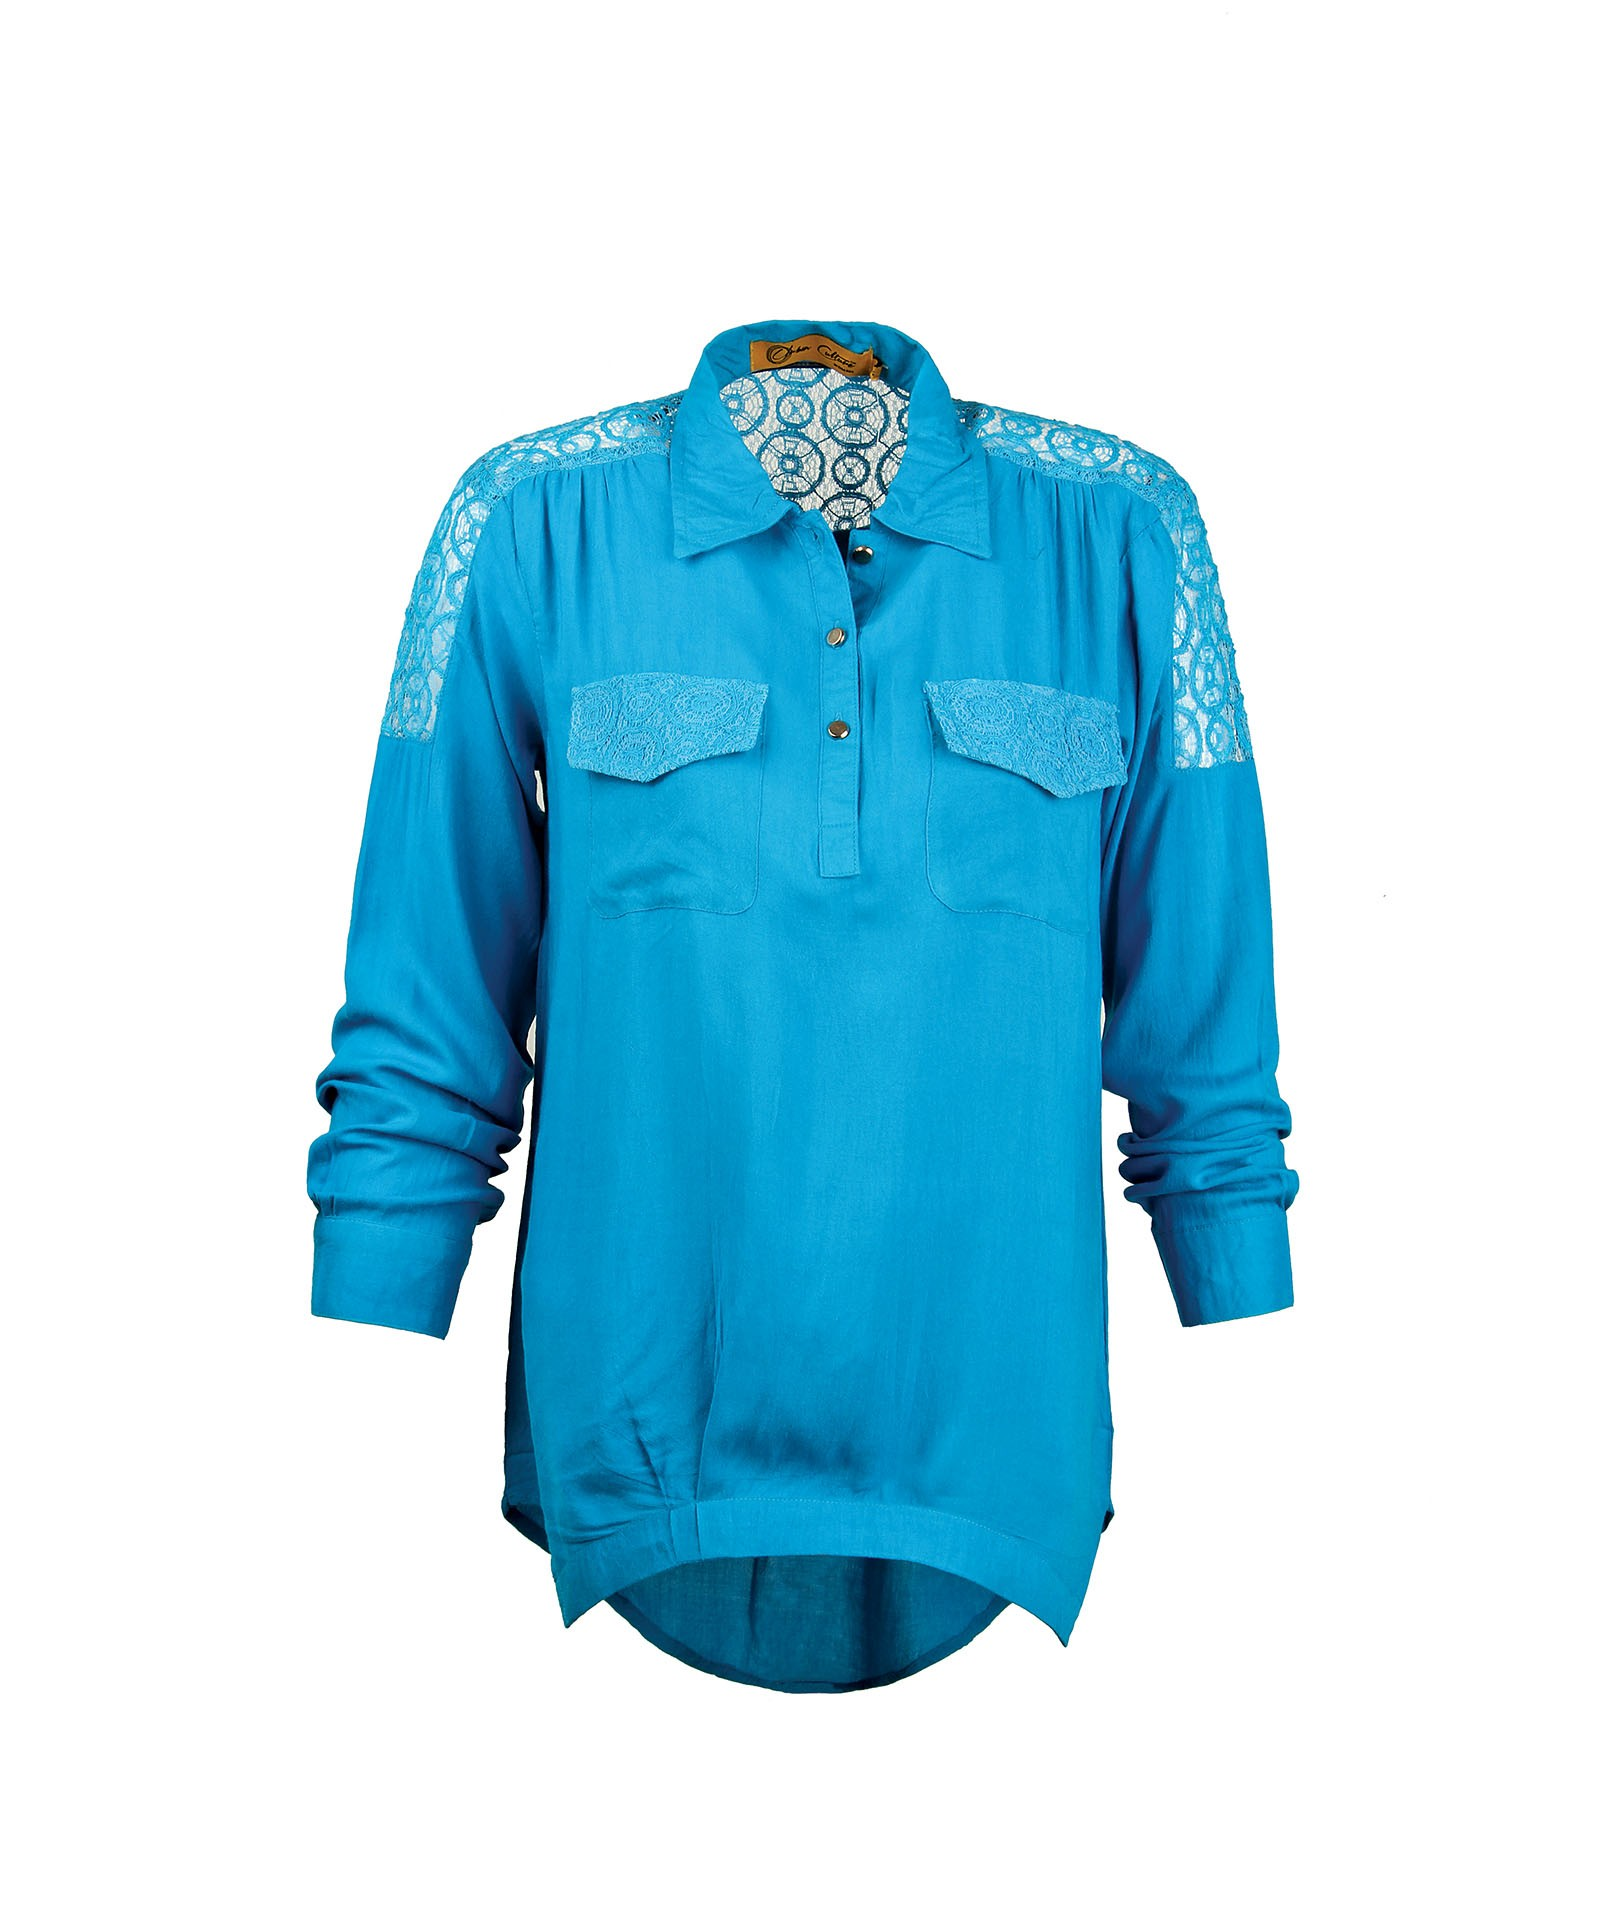 Urban-Culture-Shirts-Collection-2014-2015 (11)